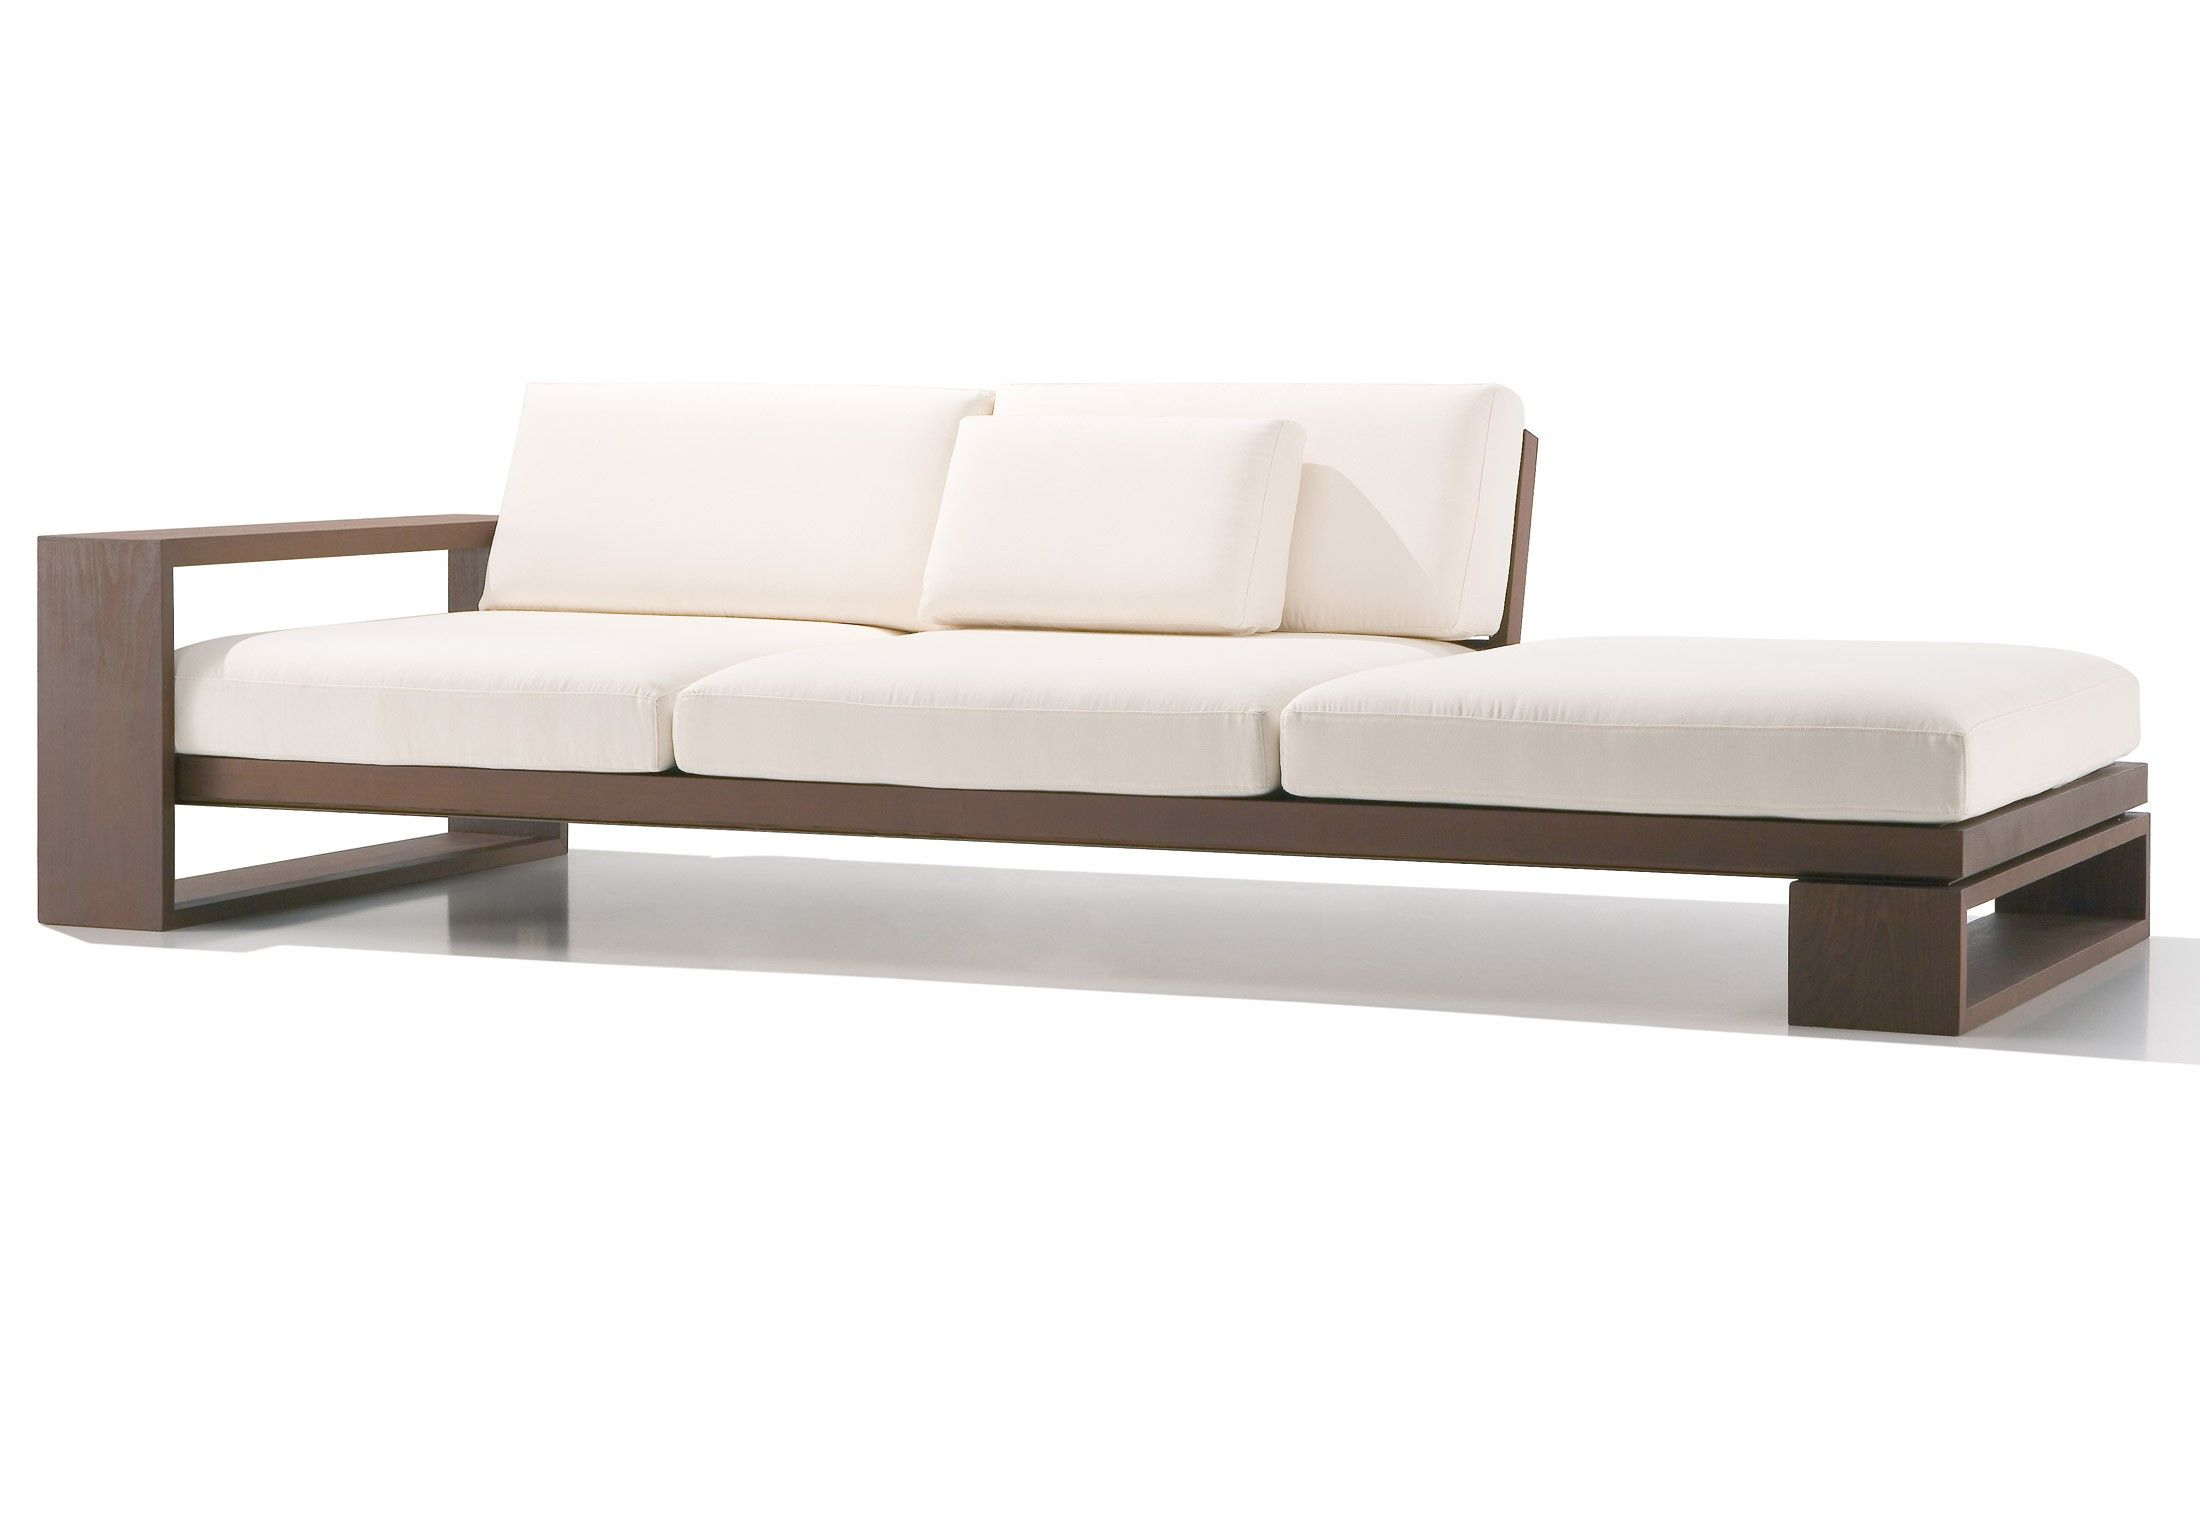 Loungemöbel Balkon Sofa Design Loungemöbel Sitzplatz Pool Contemporary Sofa